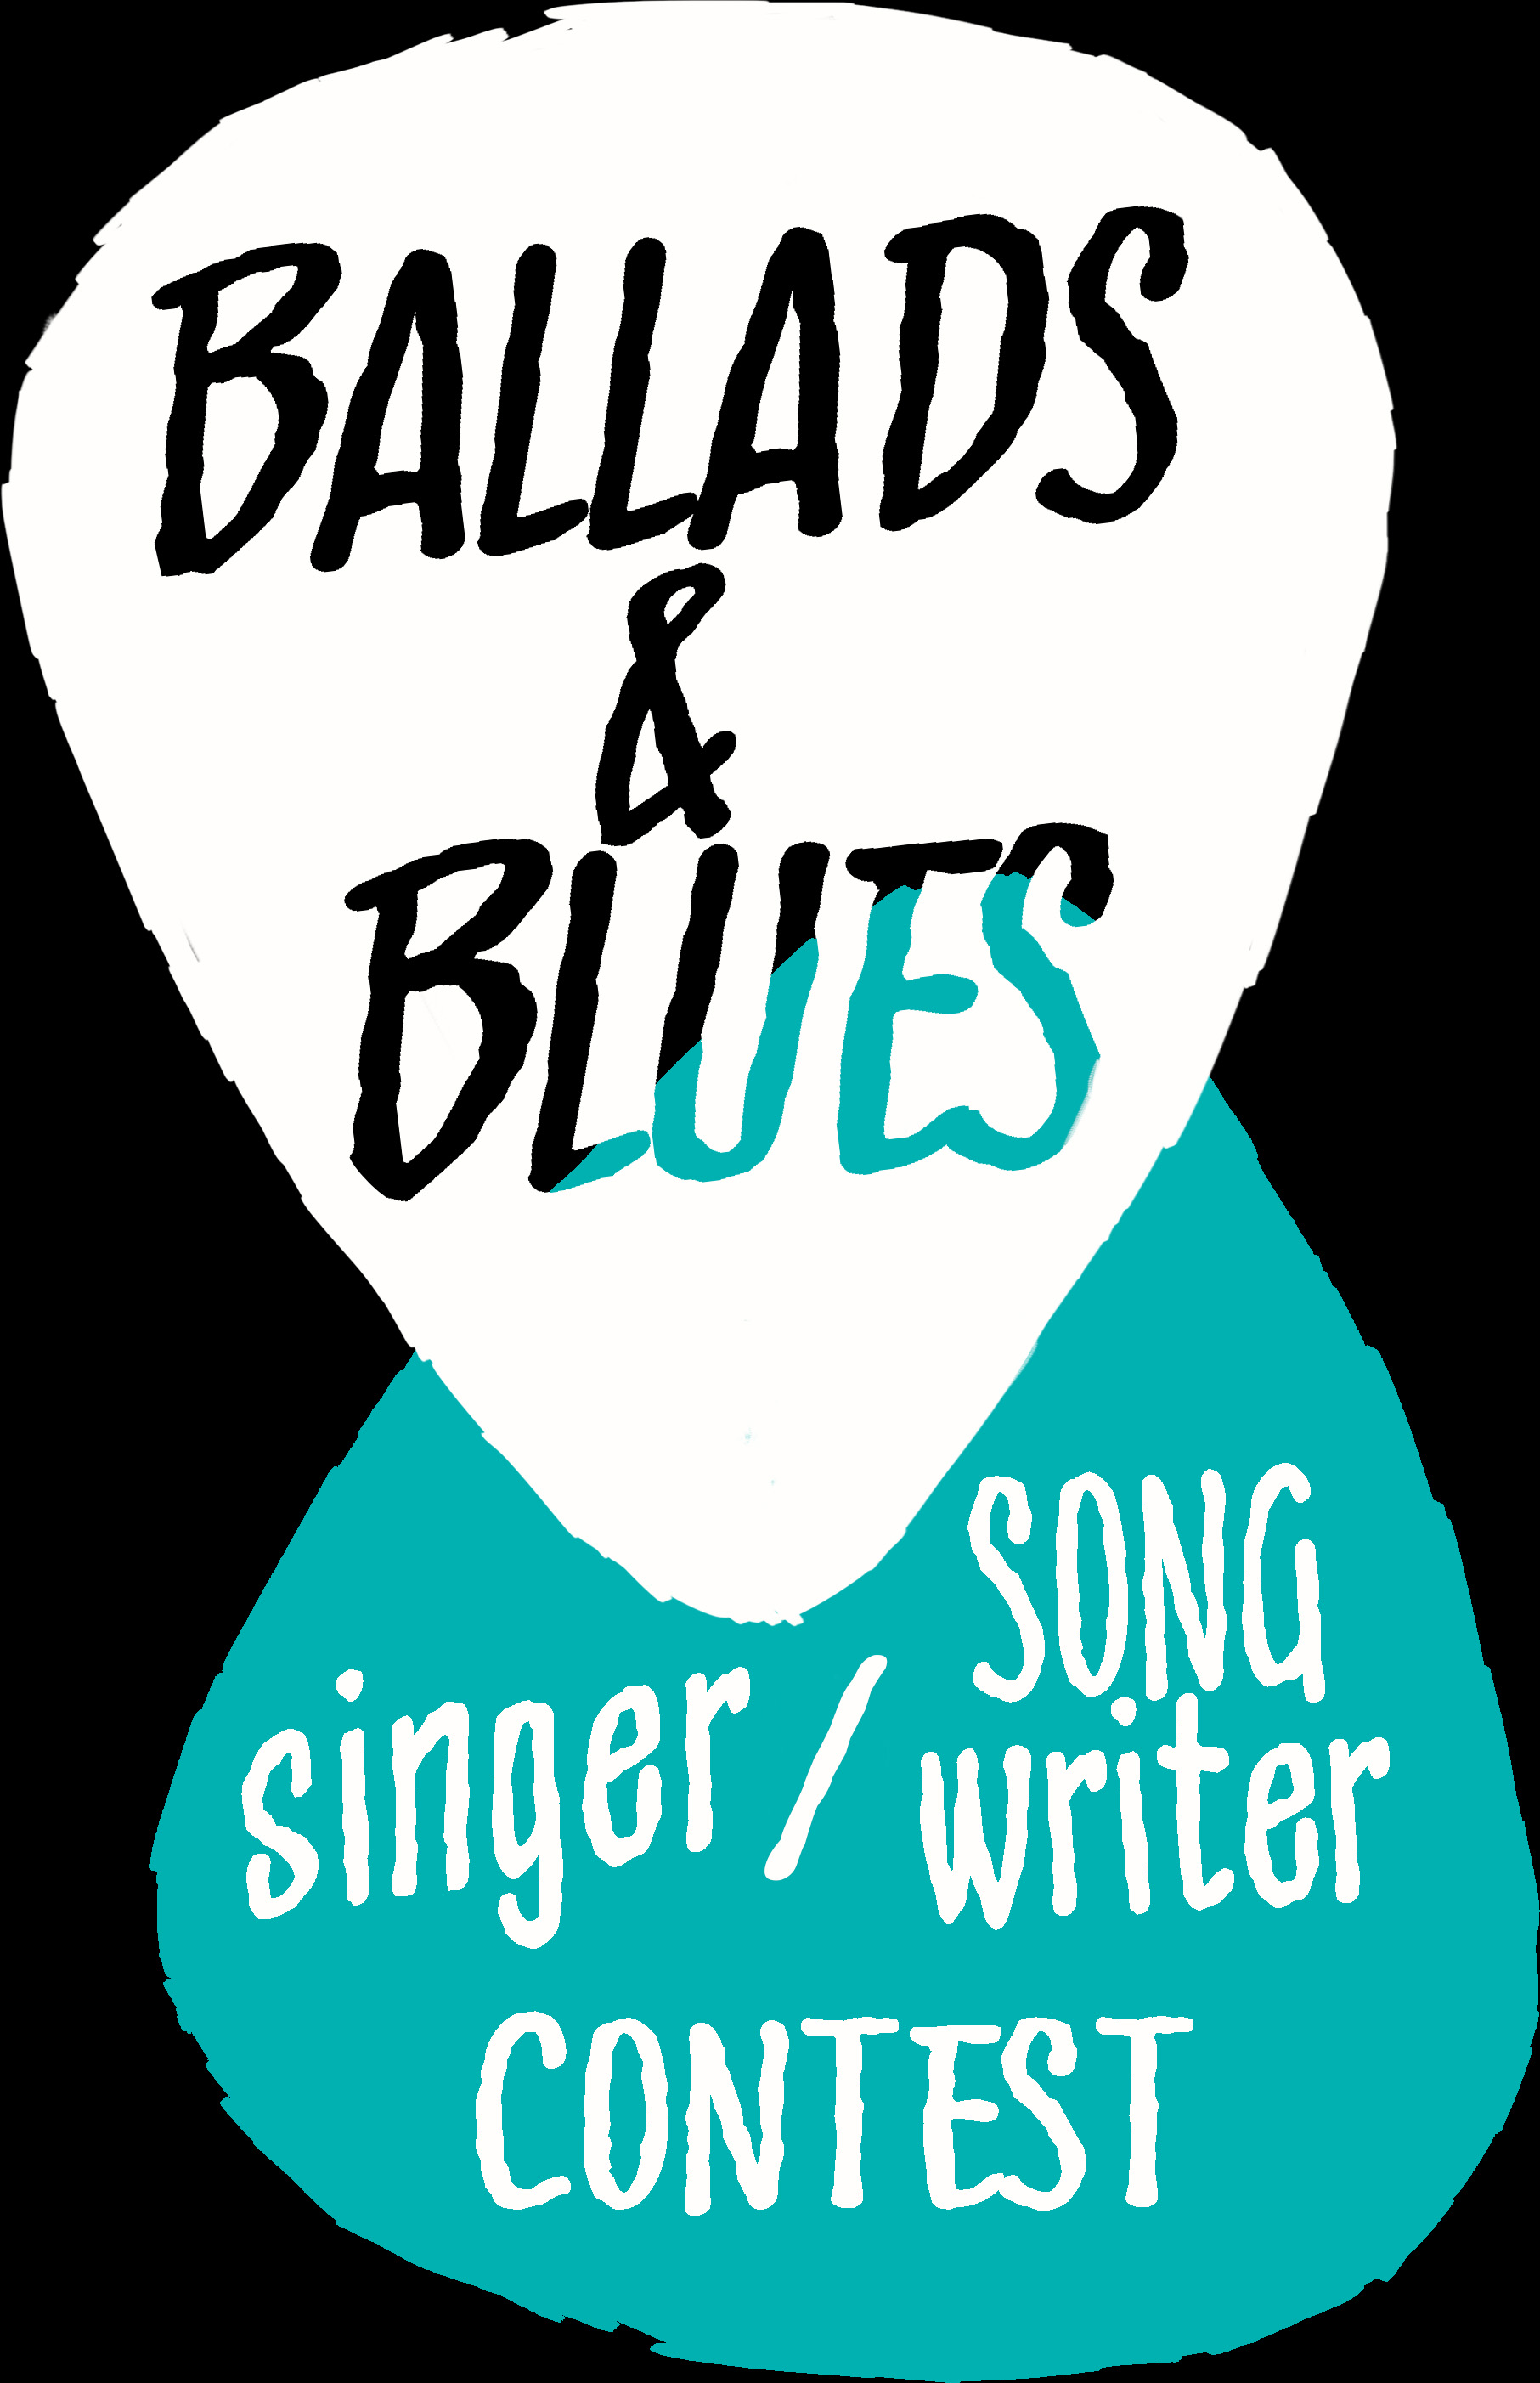 cd opnames met de Winner 2017 van Ballads & Blues